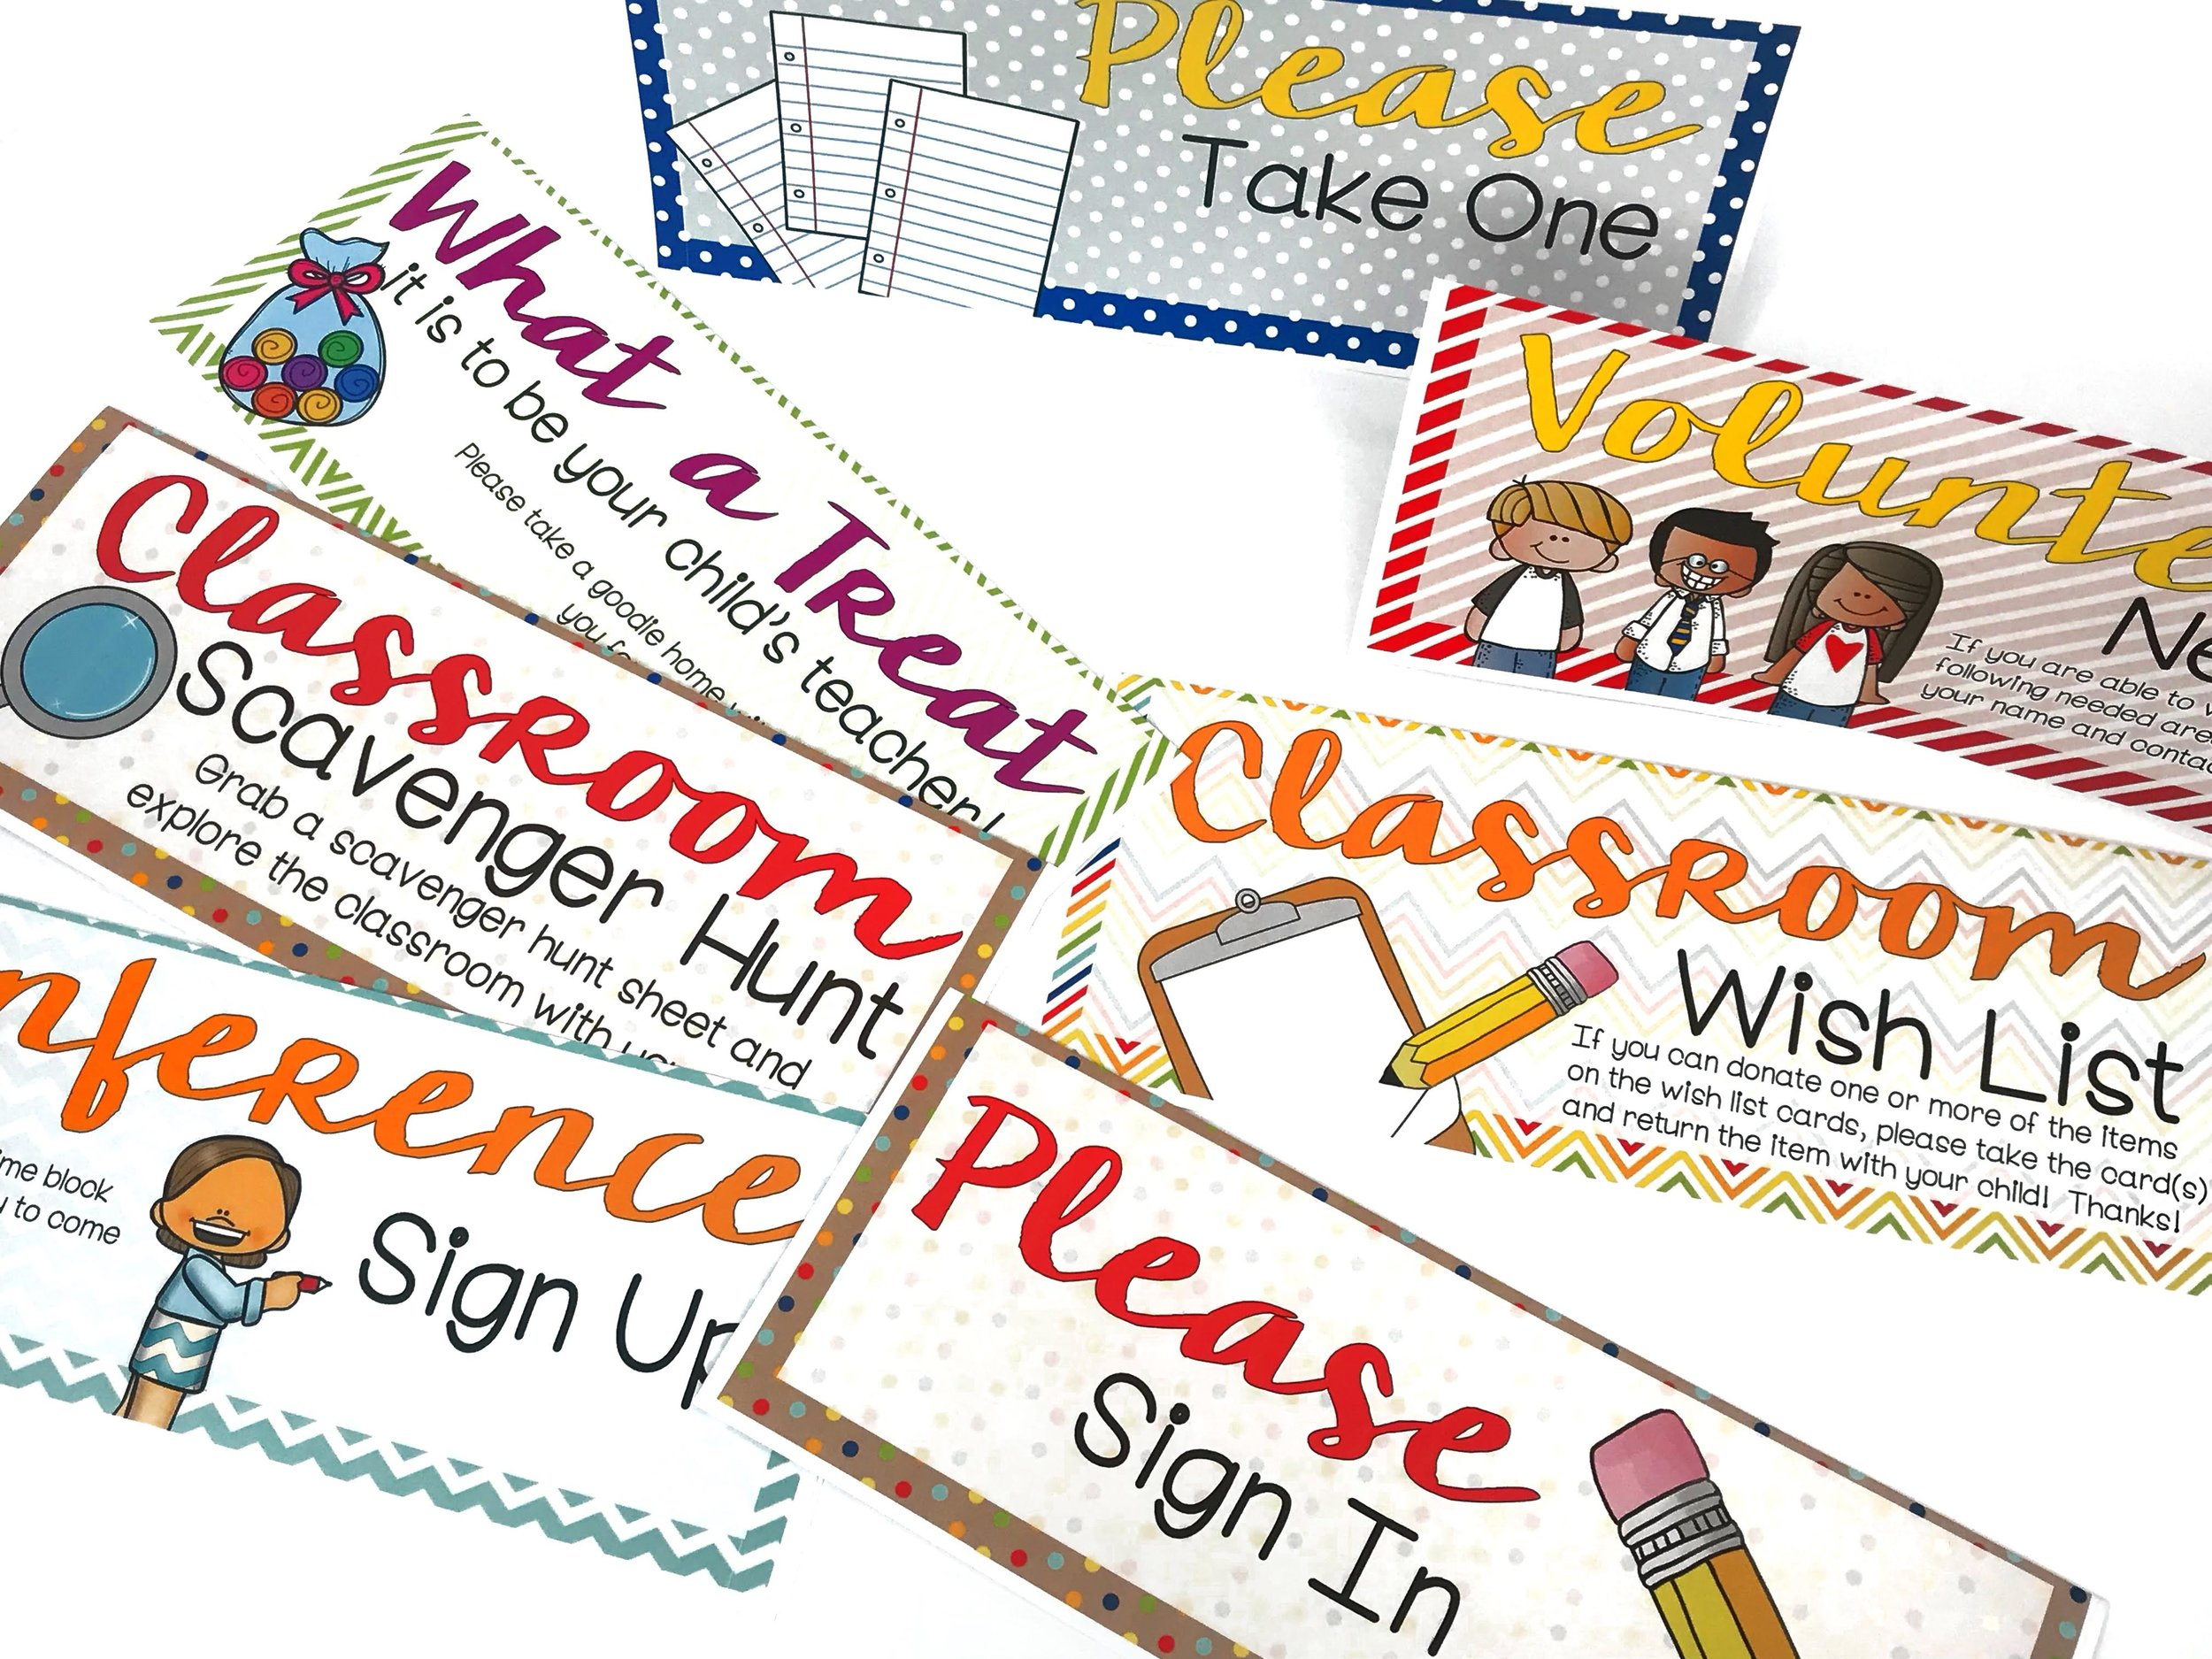 Prepare some signs to display around the classroom during your open house to guide parents